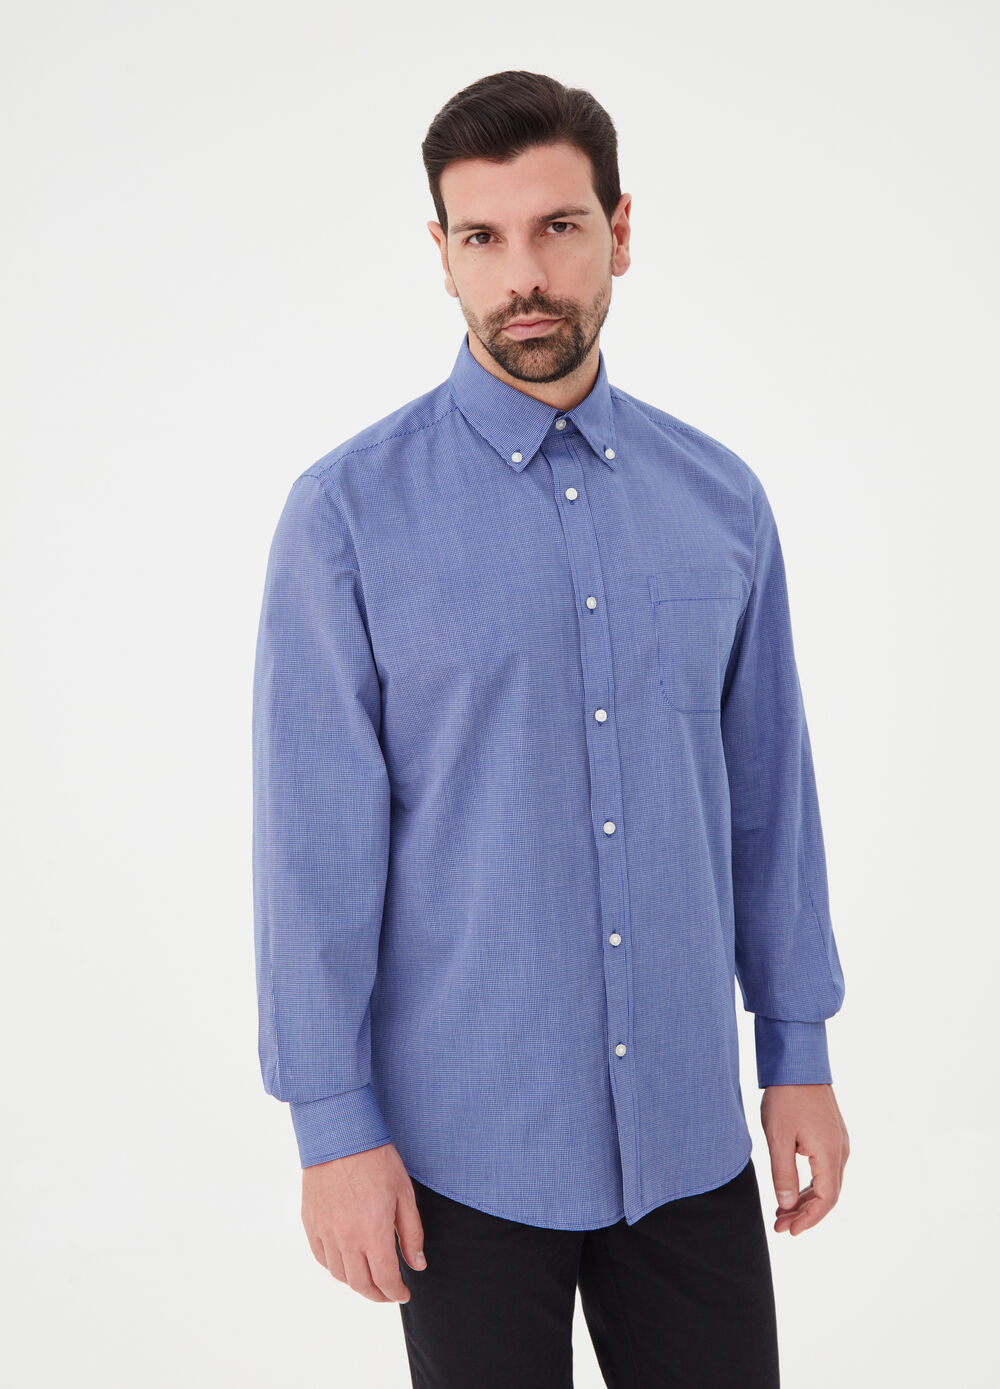 Regular-fit shirt in cotton blend poplin